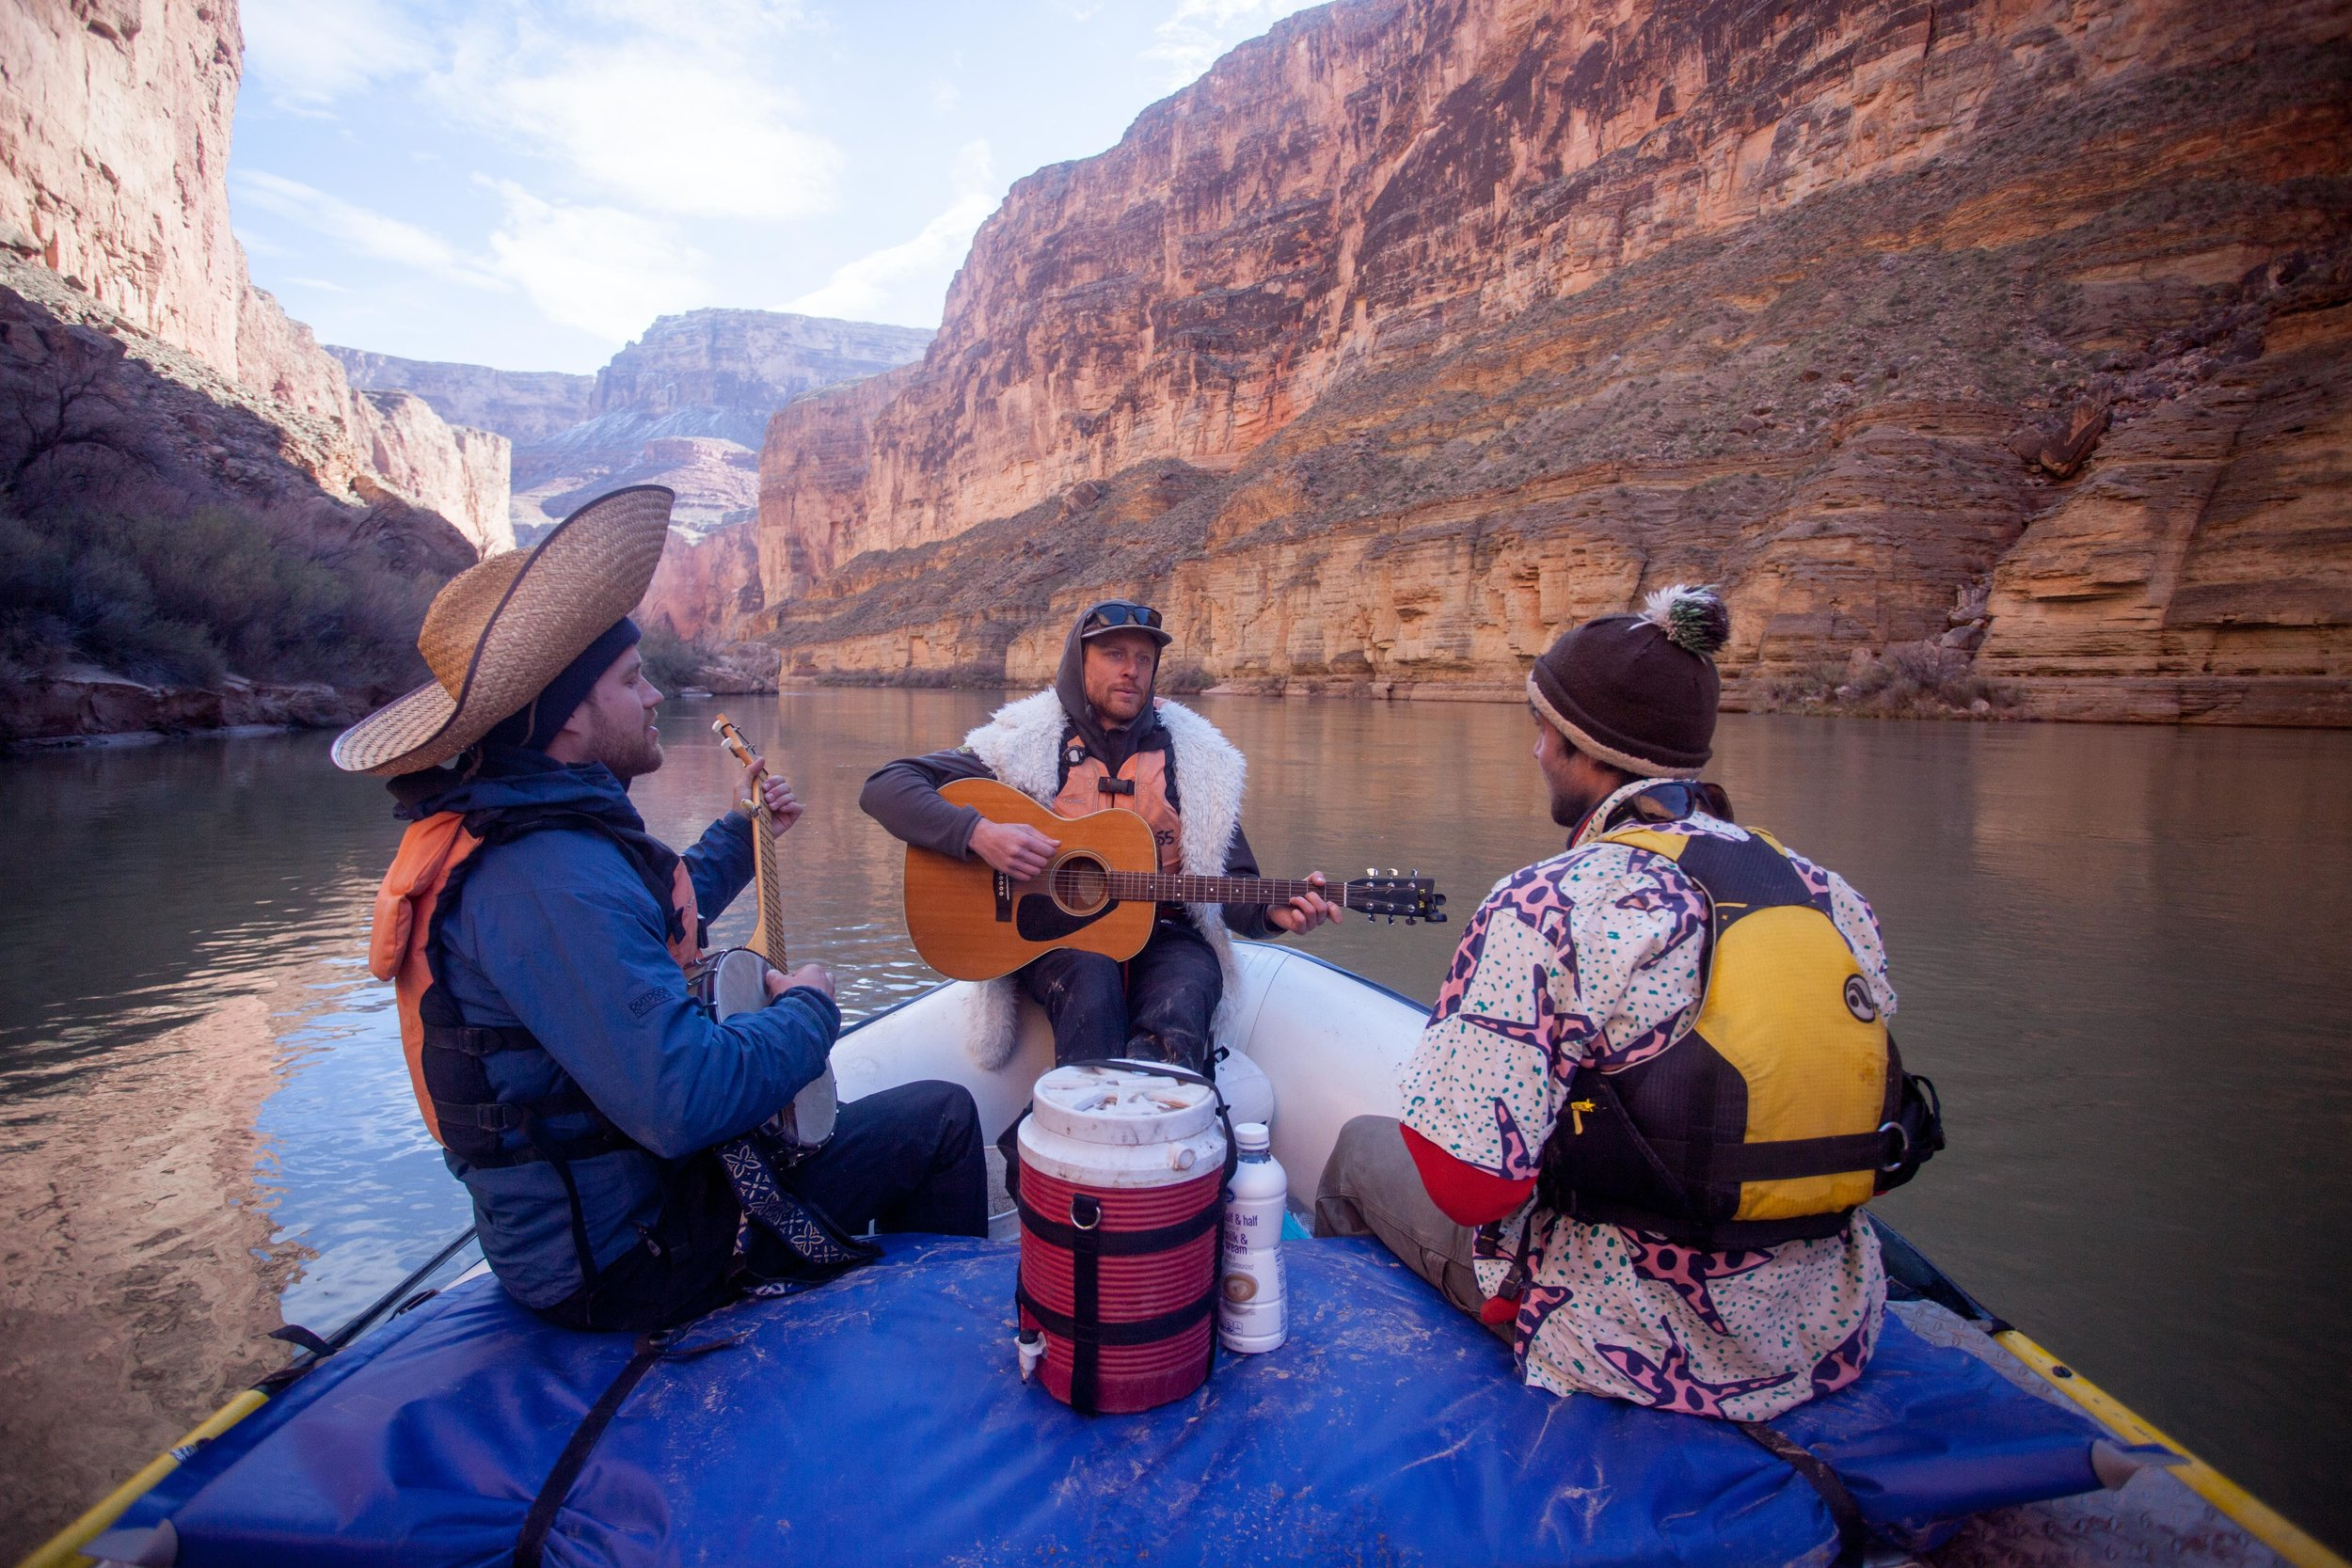 Singing through the flatwater, fueled by hot coffee in a huge thermos.